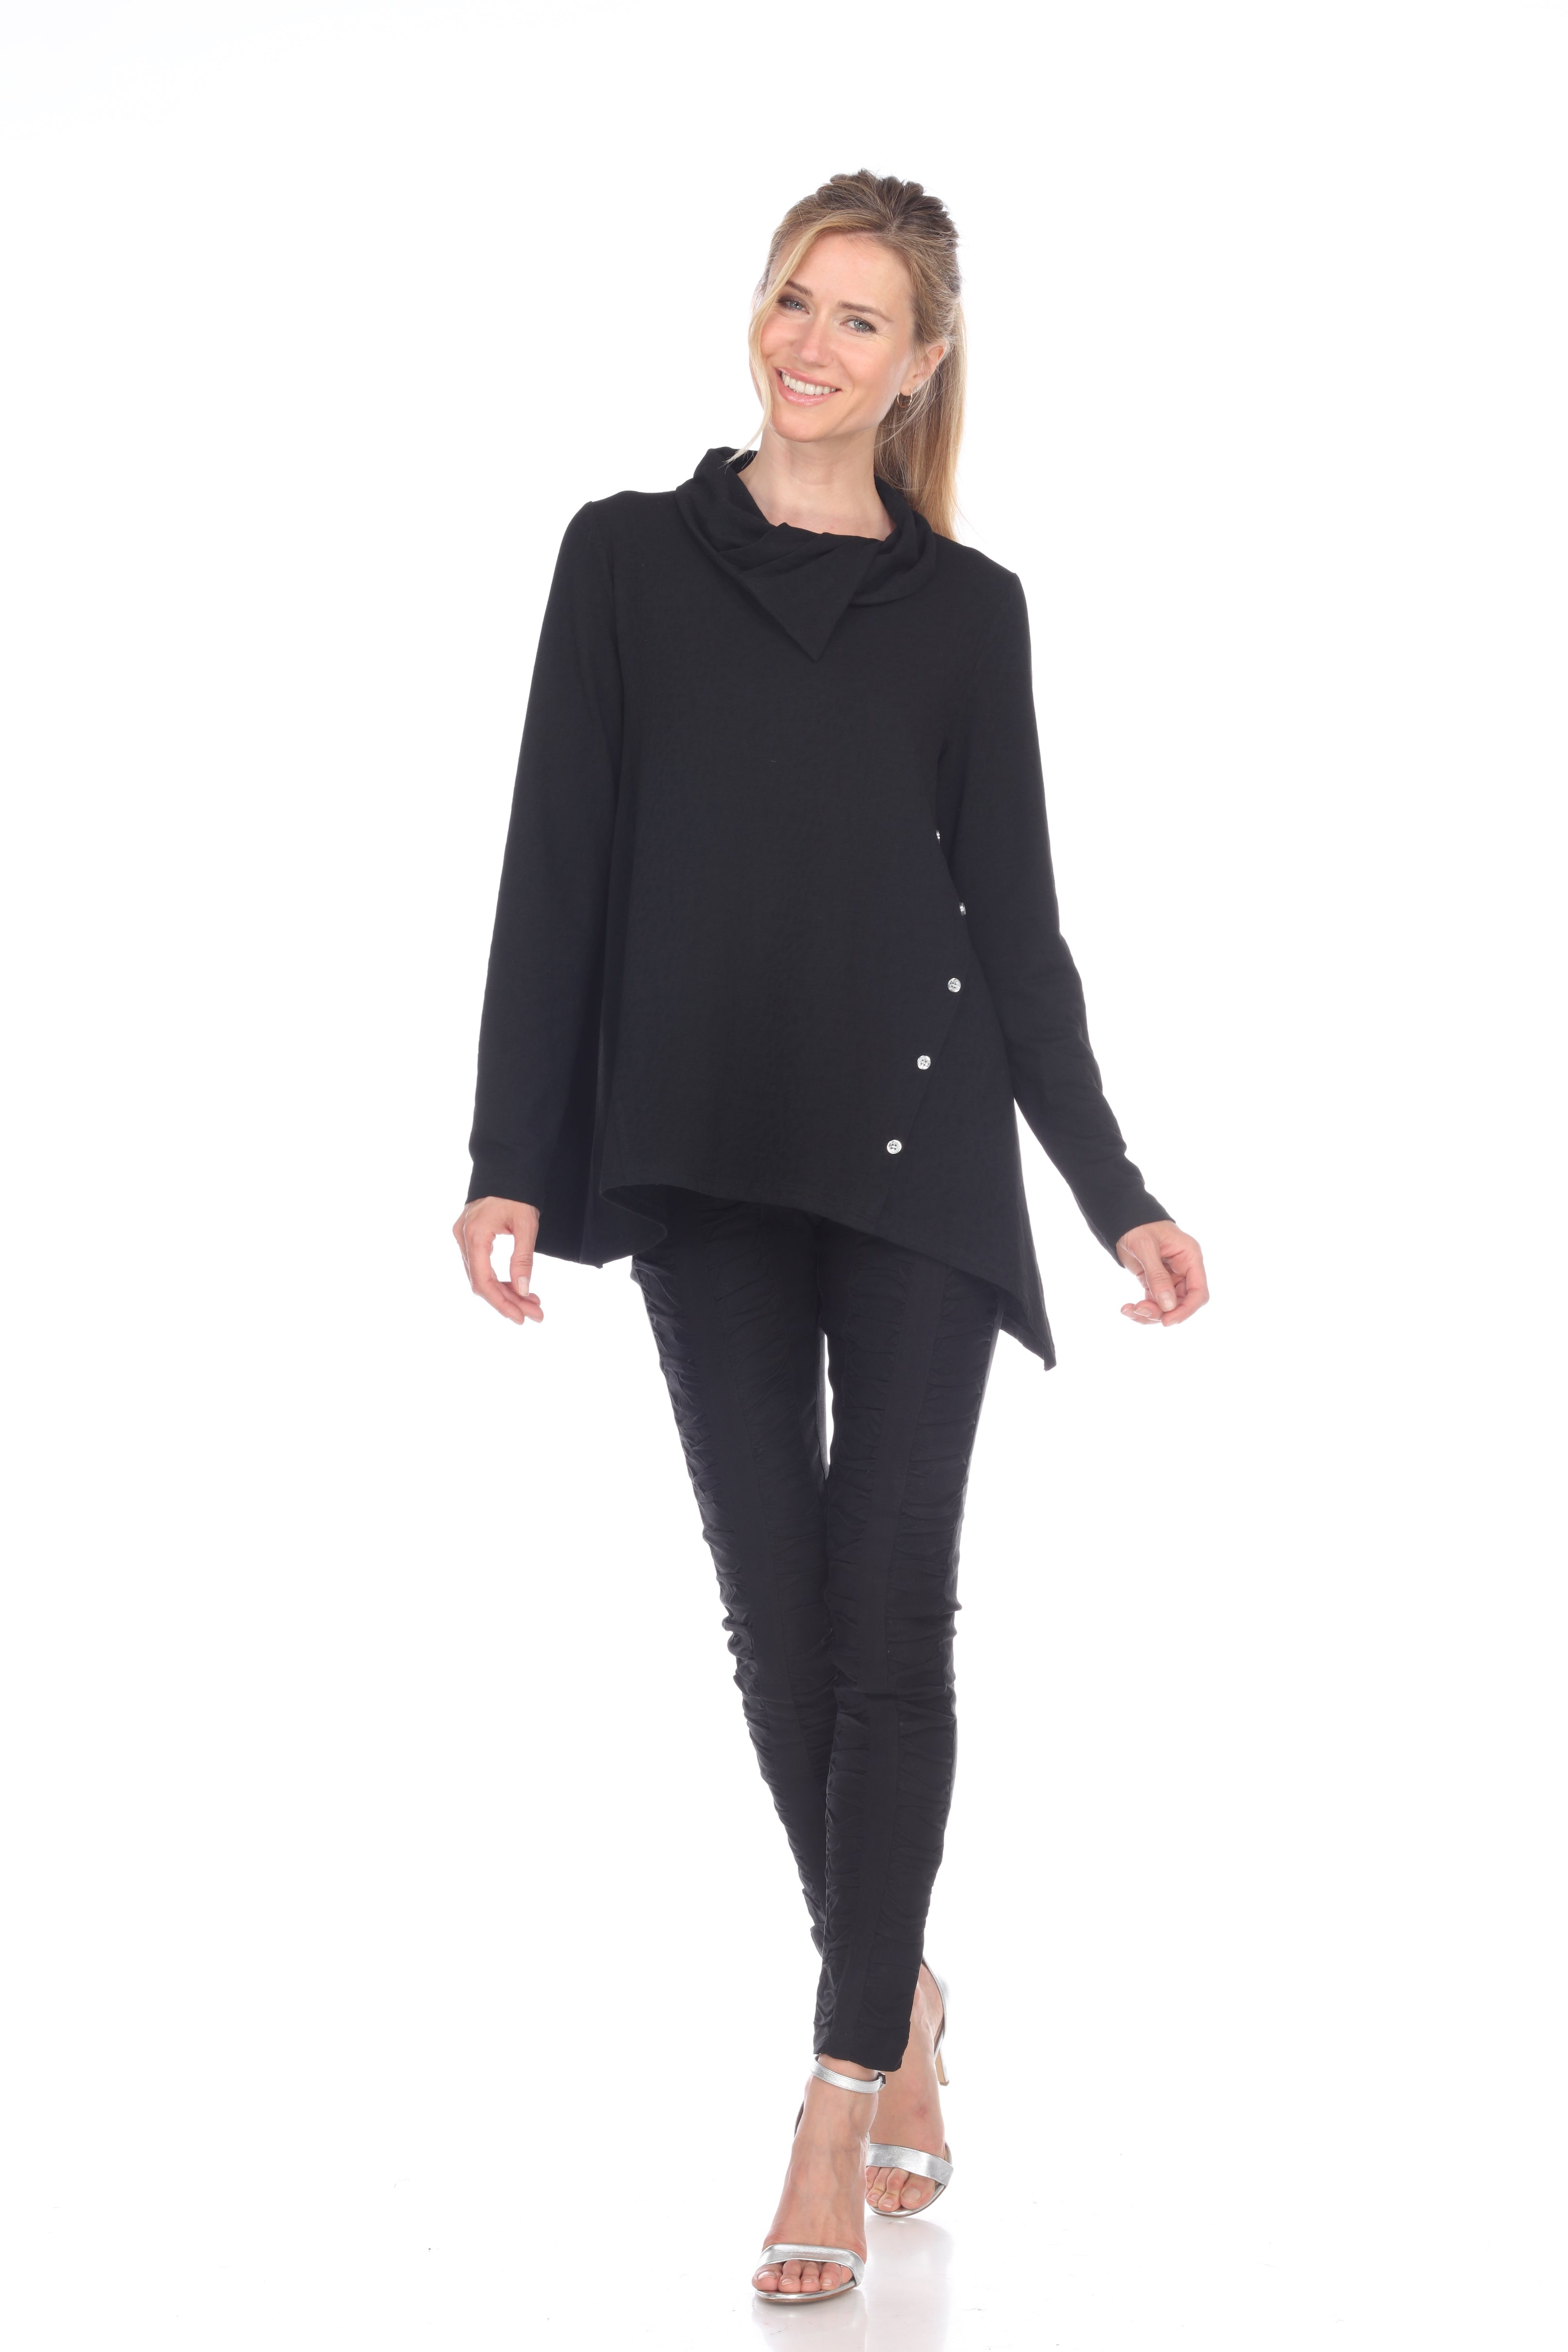 Tunic with Asymmetrical Button Front - Black - CARINE